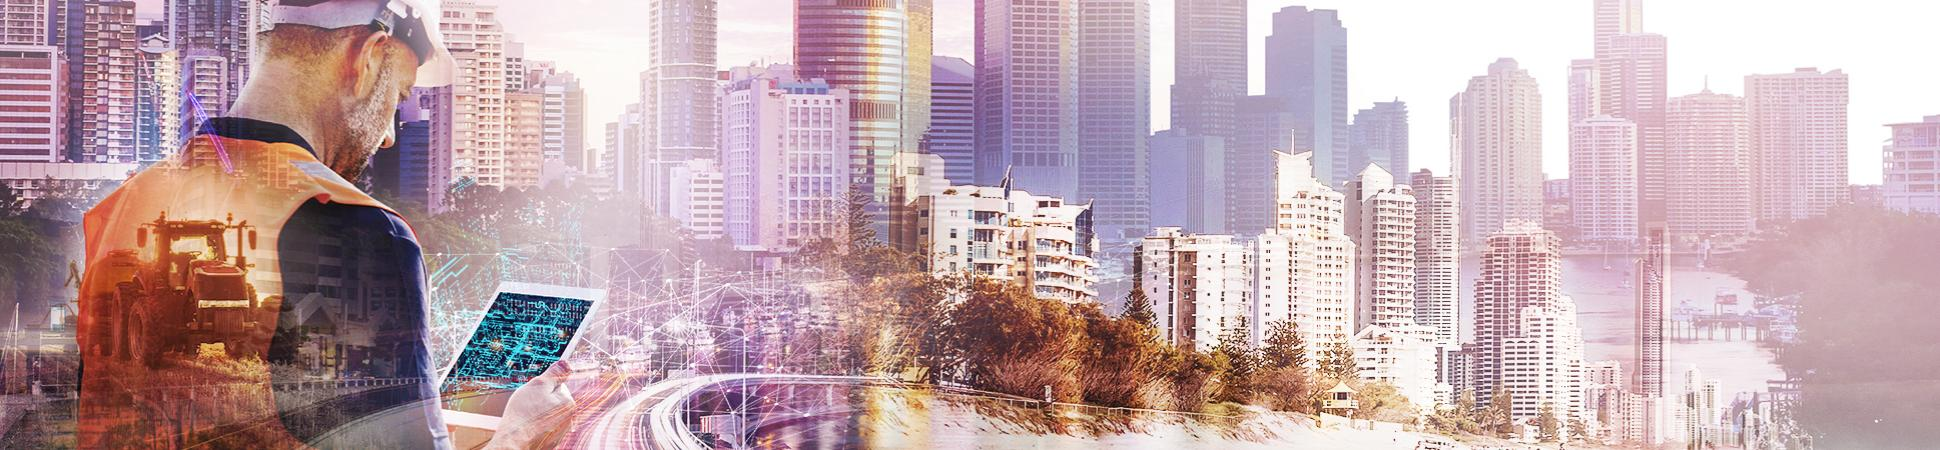 Building our Innovation Economy - Advance Queensland Strategy (Draft)